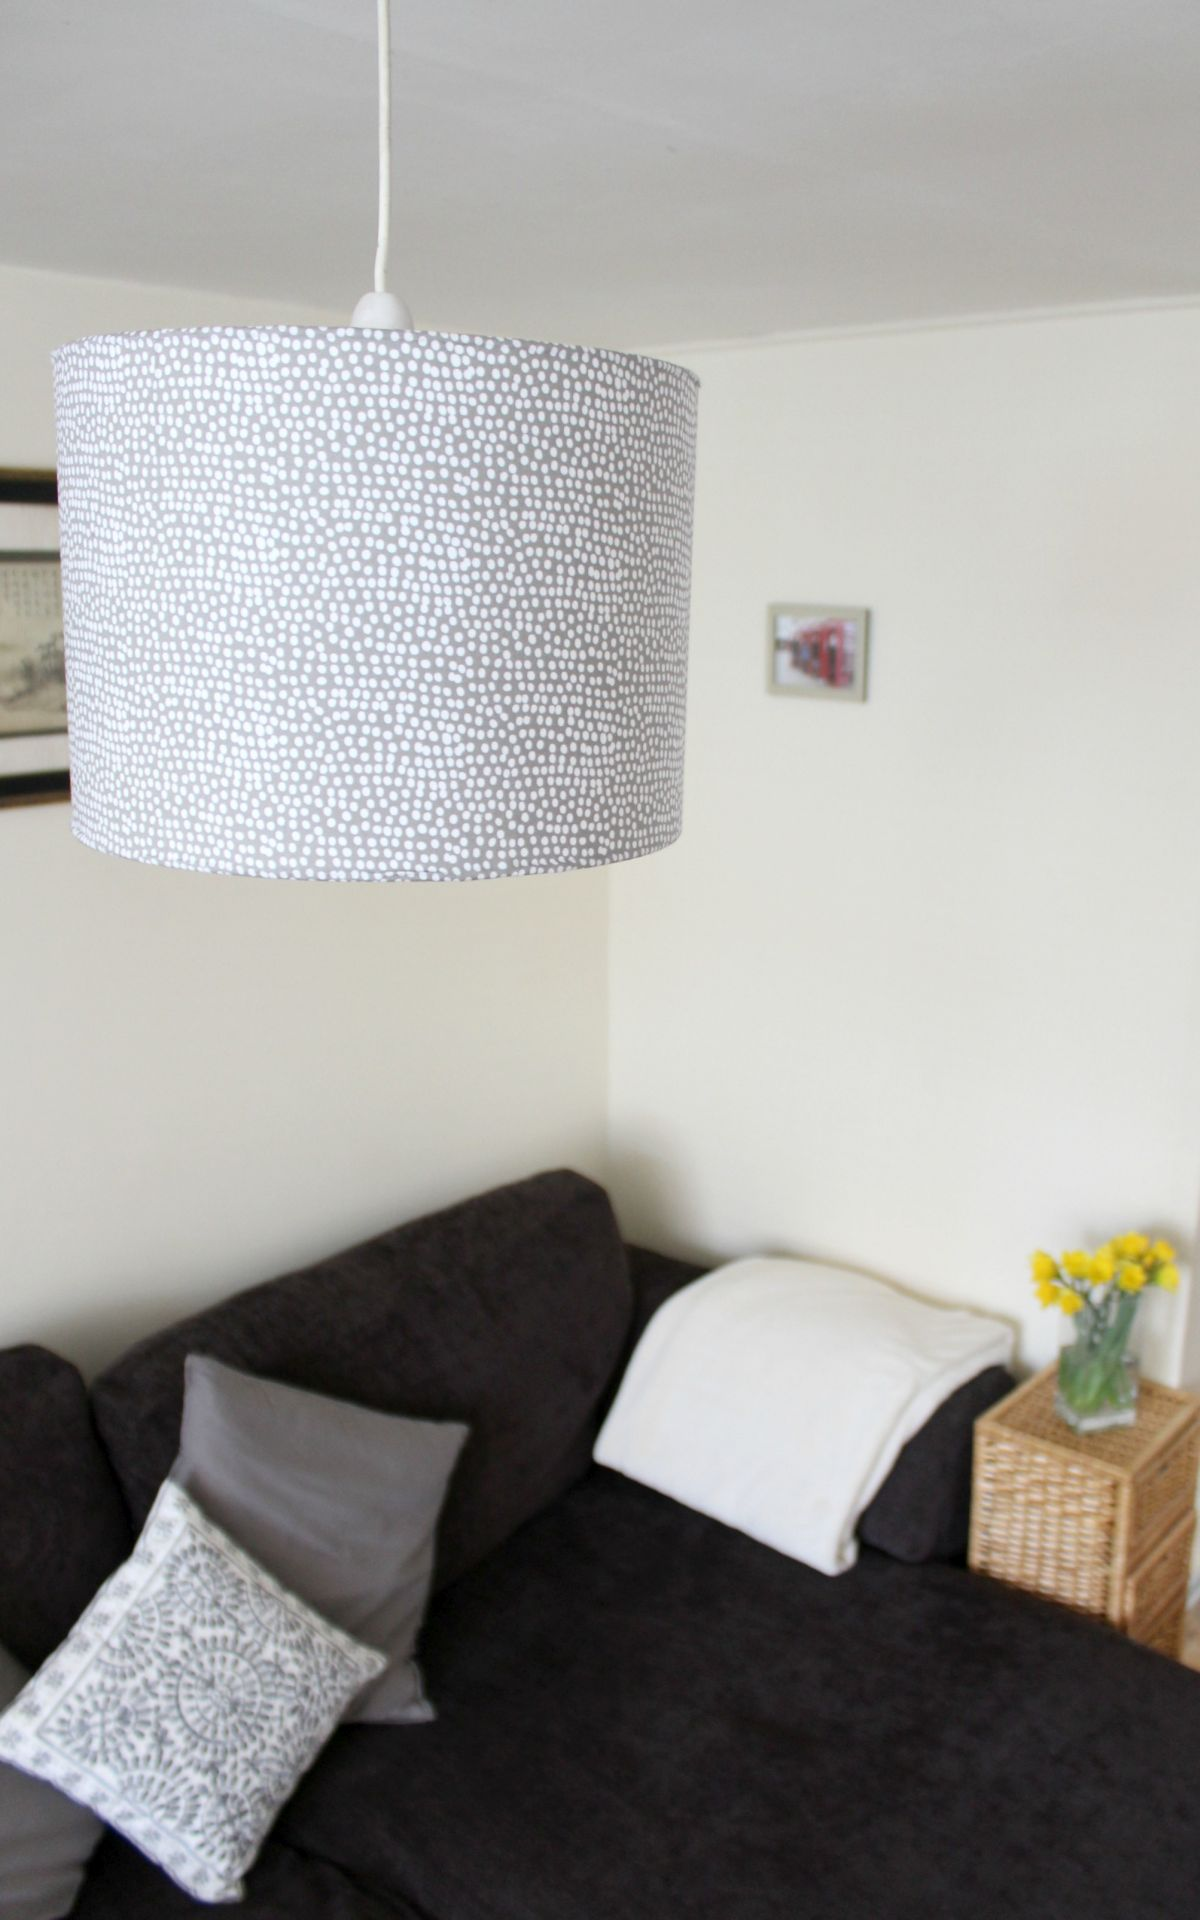 Diy lampshade ideas the best and the brightest home decorating trends homedit aloadofball Image collections